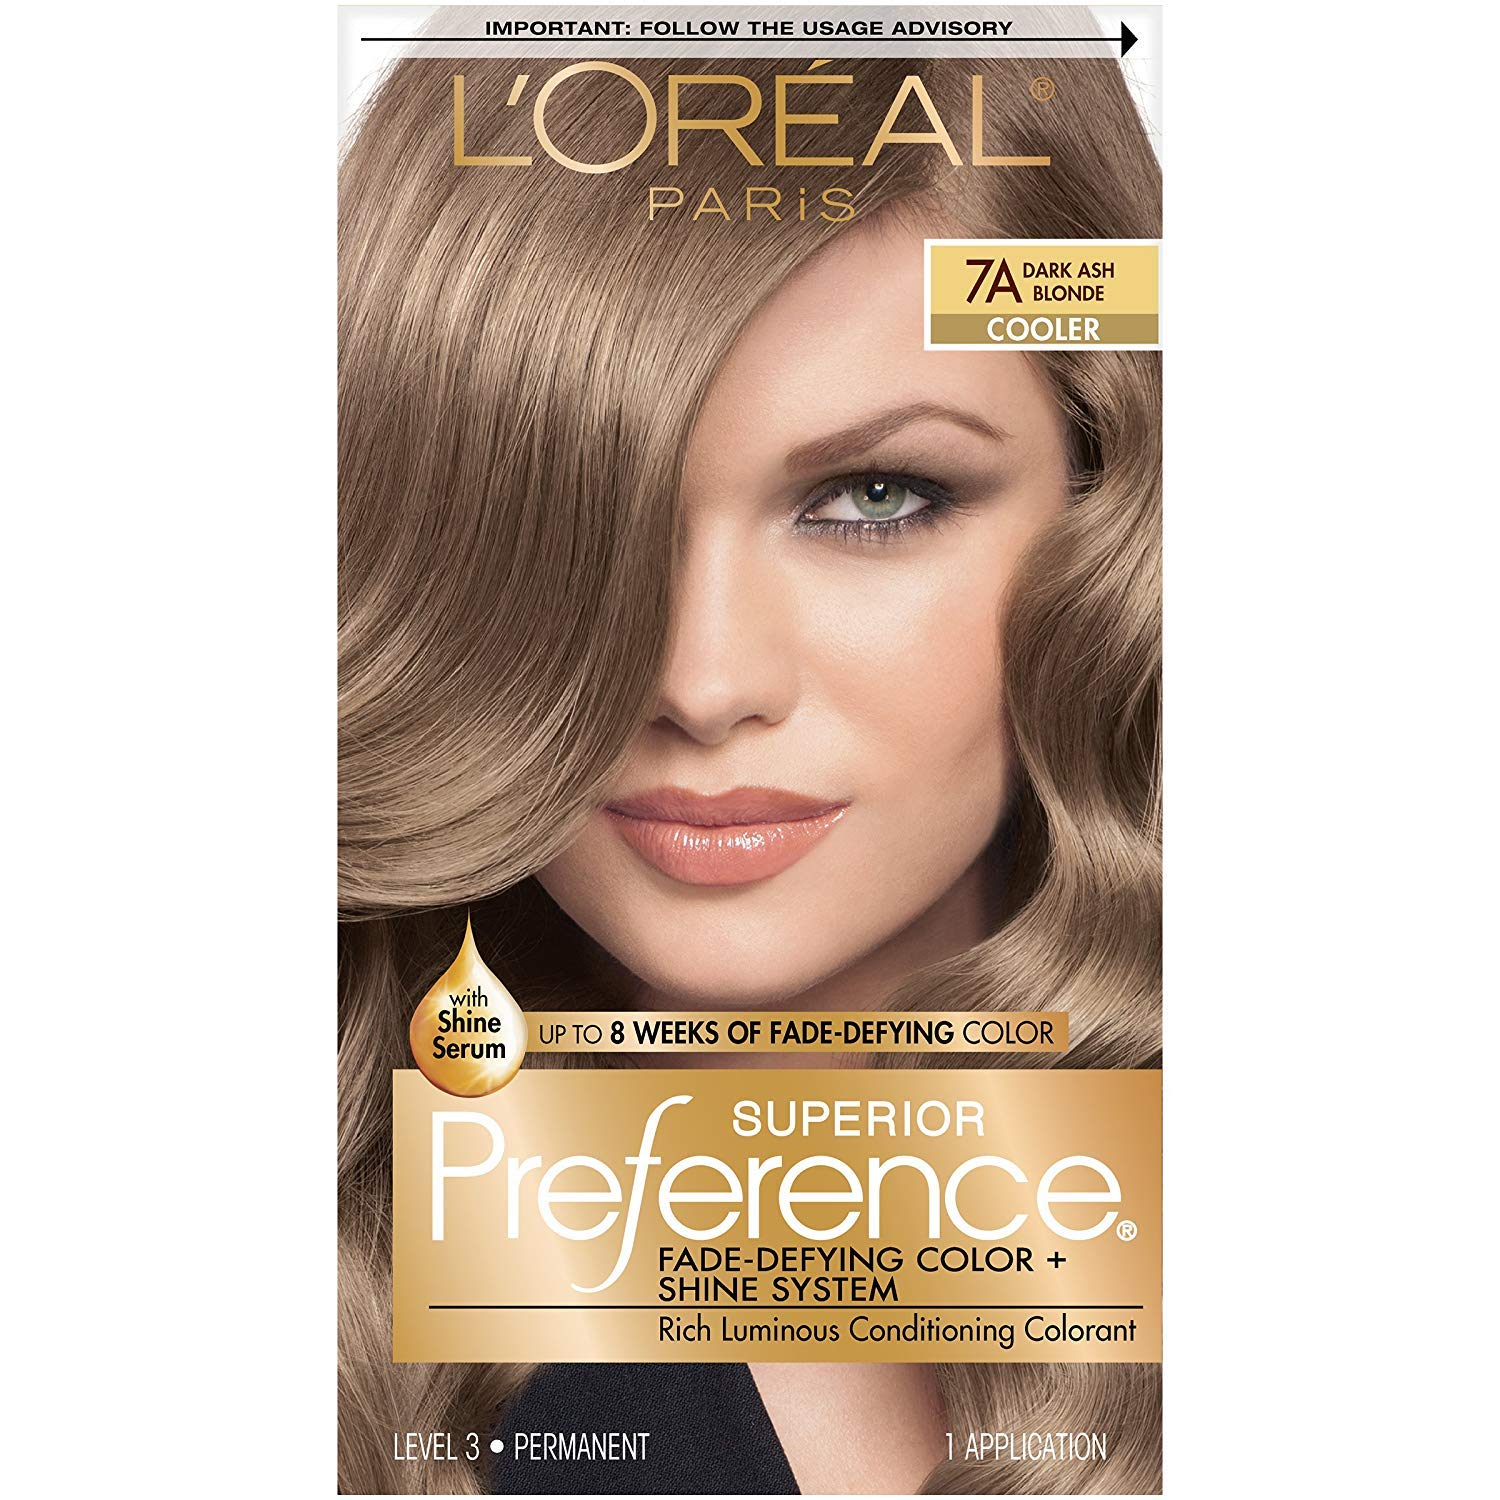 L'Oreal Superior Preference - 7A Dark Ash Blonde (Cooler) 1 Each (Pack of 3)